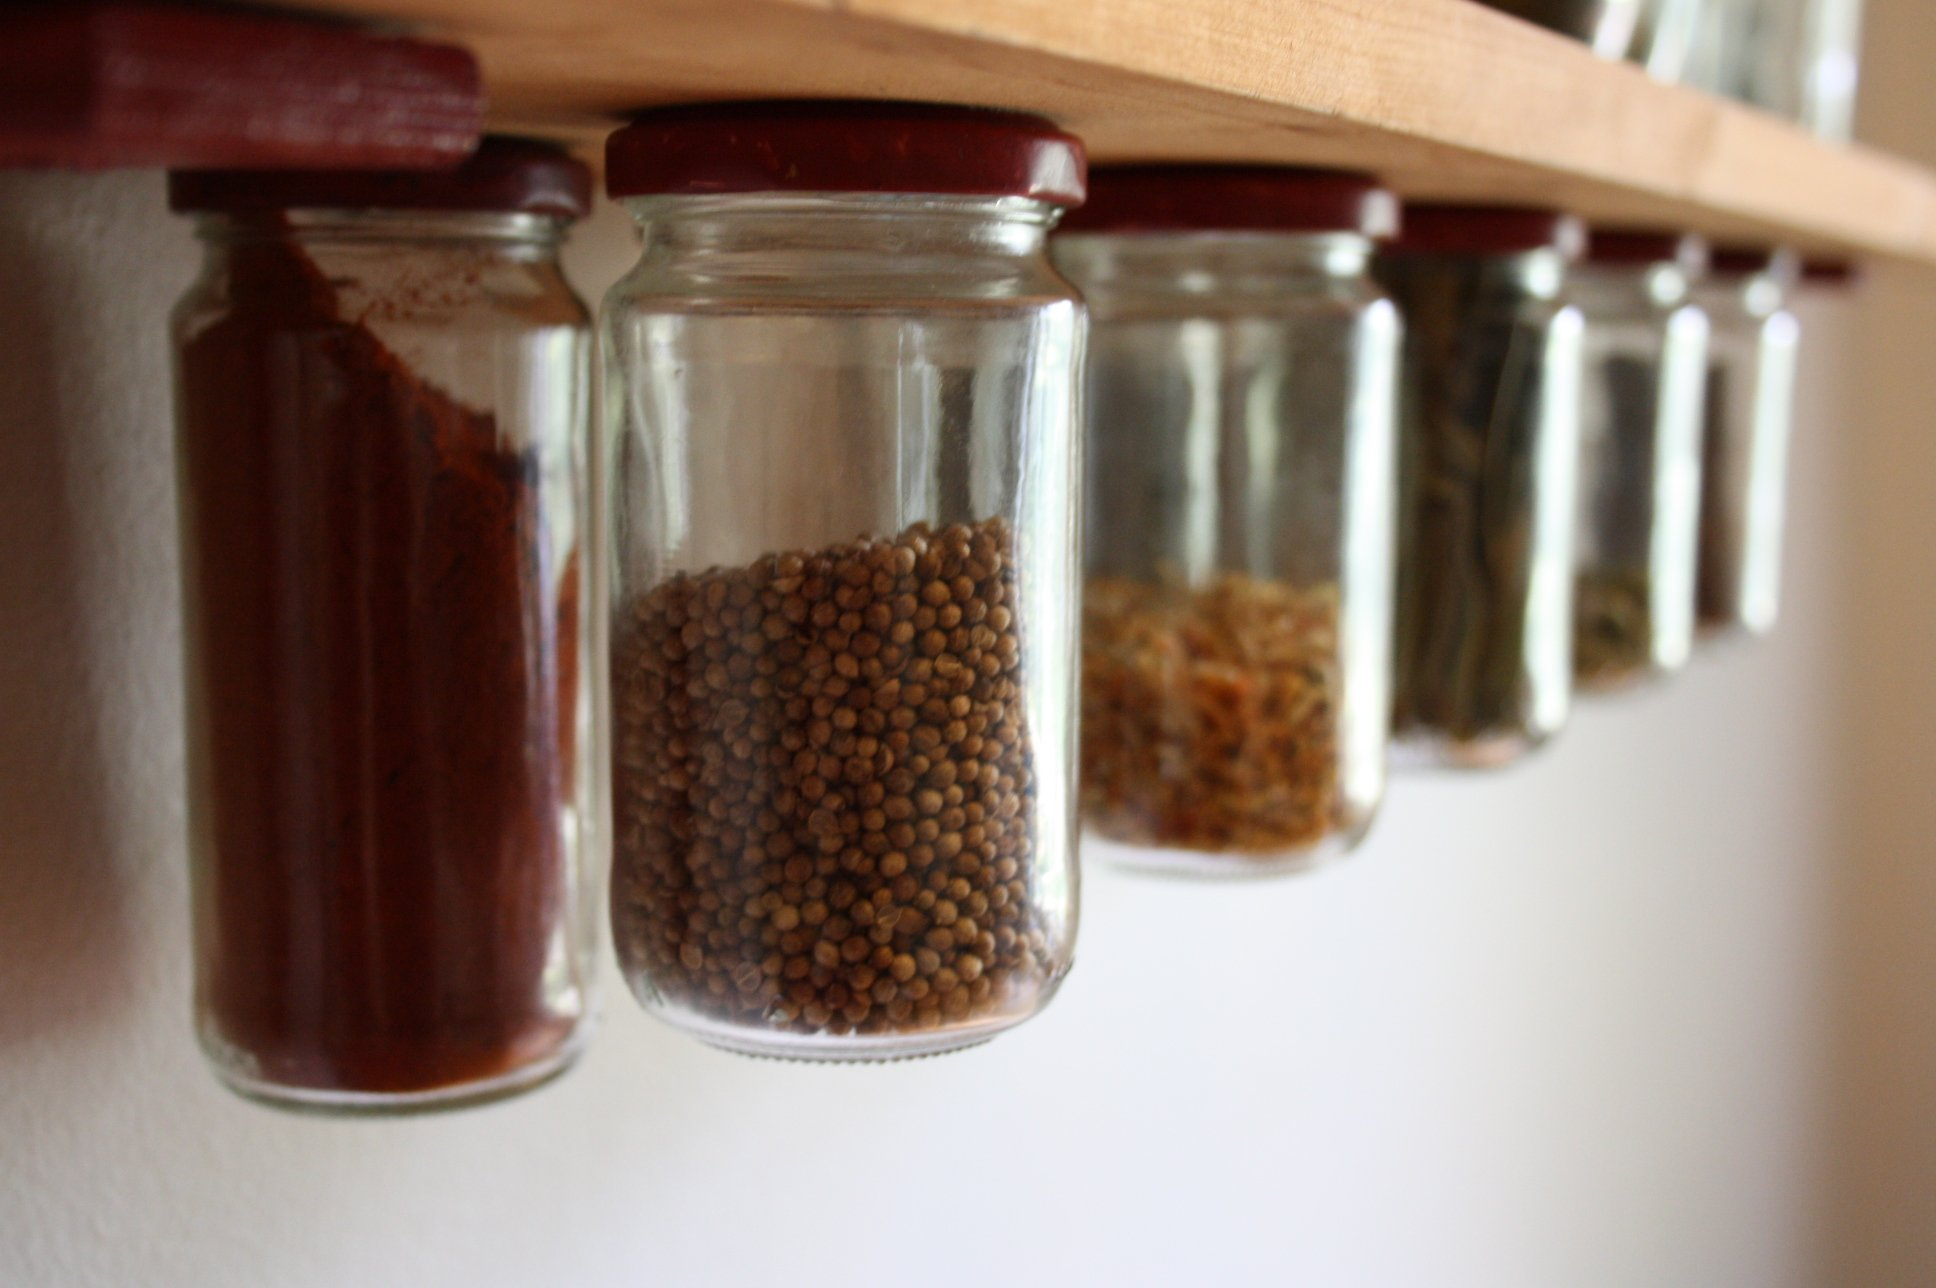 DIY Spice Rack: Instructions and Ideas